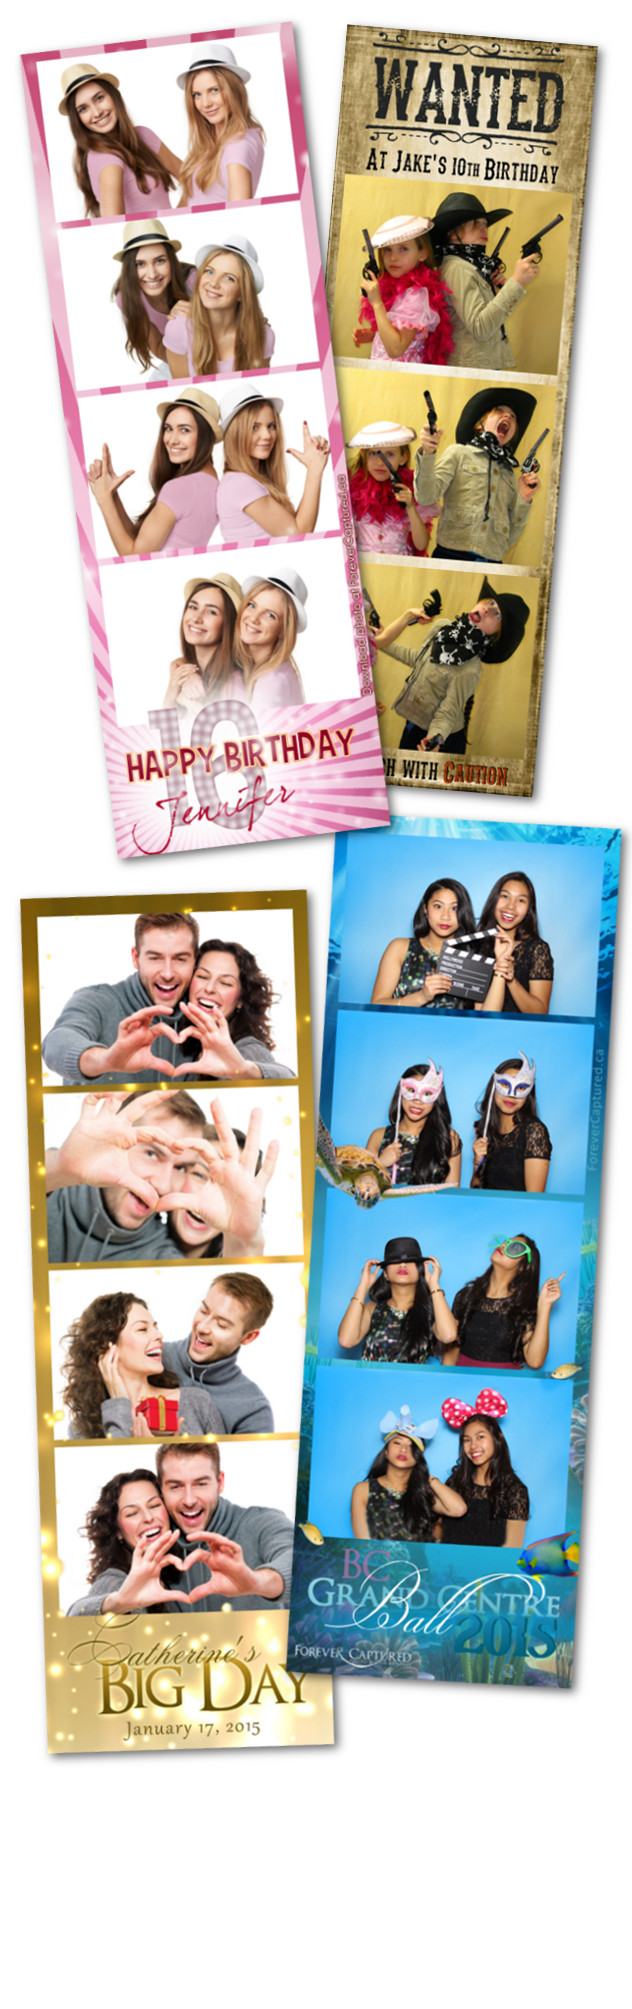 Photobooth rentals for parties, weddings, and events in Langley, BC.